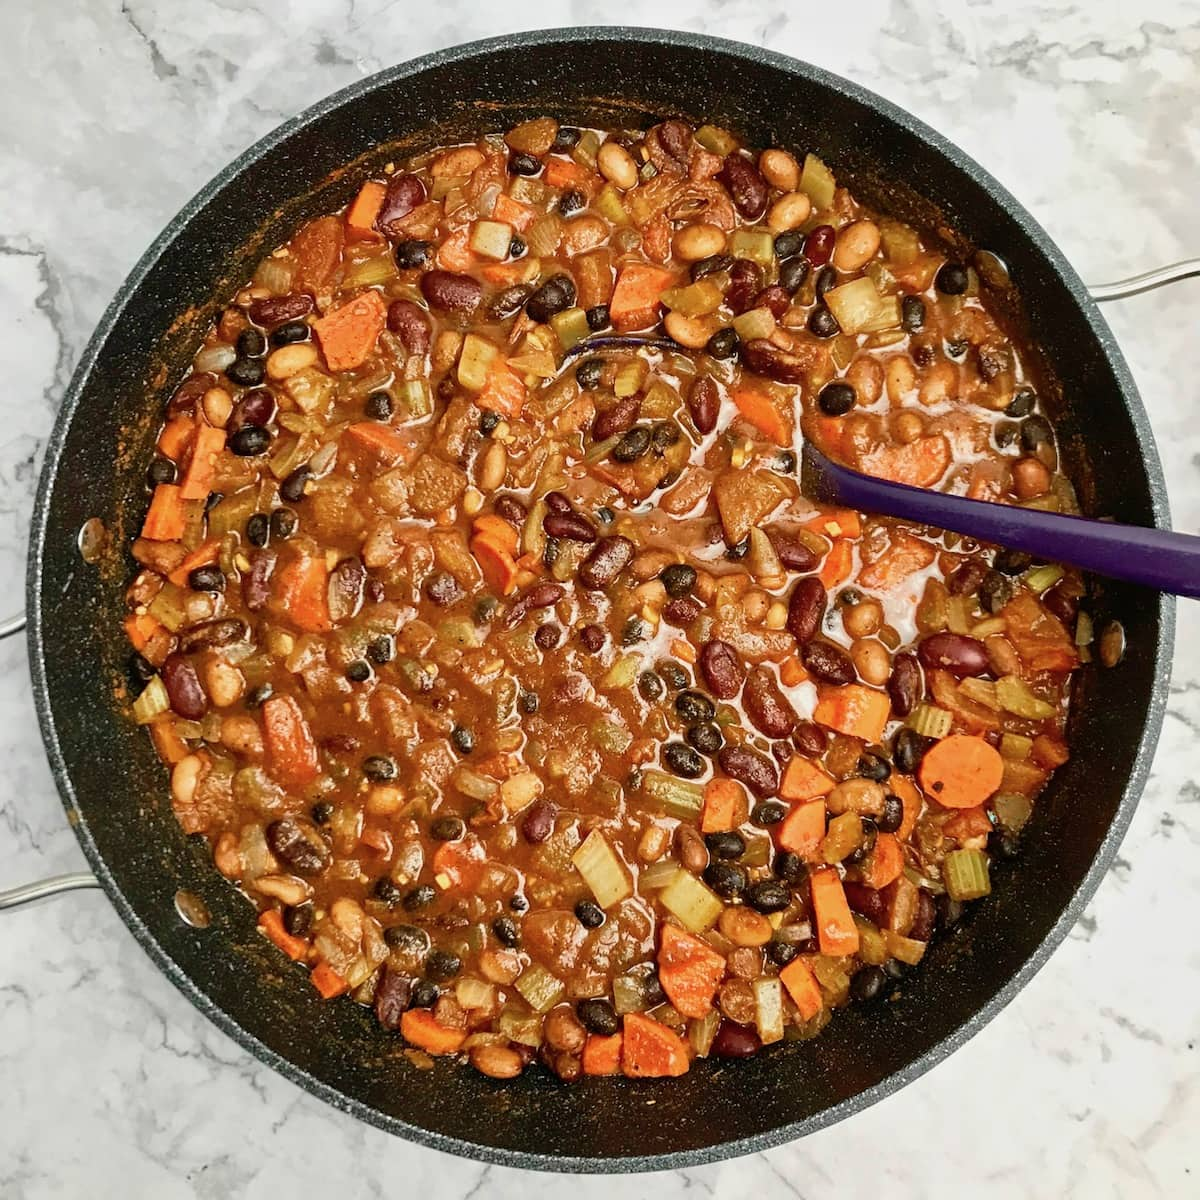 Vegan bean chili in a dutch oven pot with a purple serving spoon in it.